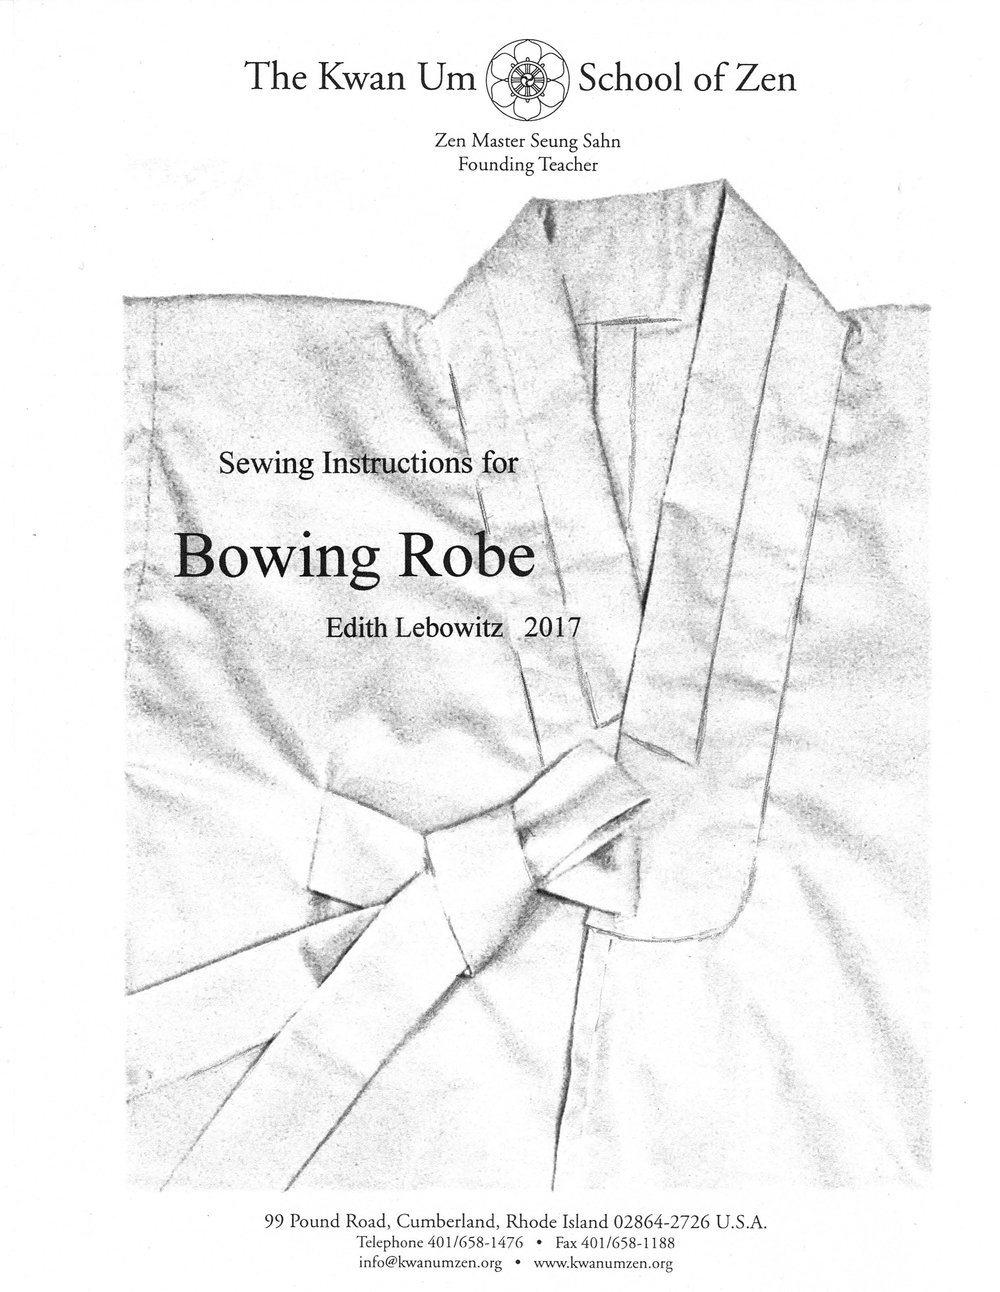 Revised Bowing Robe Instructions with annotations by Edith Lebowitz.   - These instructions are to be used with the full-size patterns that can be requested from the Kwan Um School of Zen—Americas.